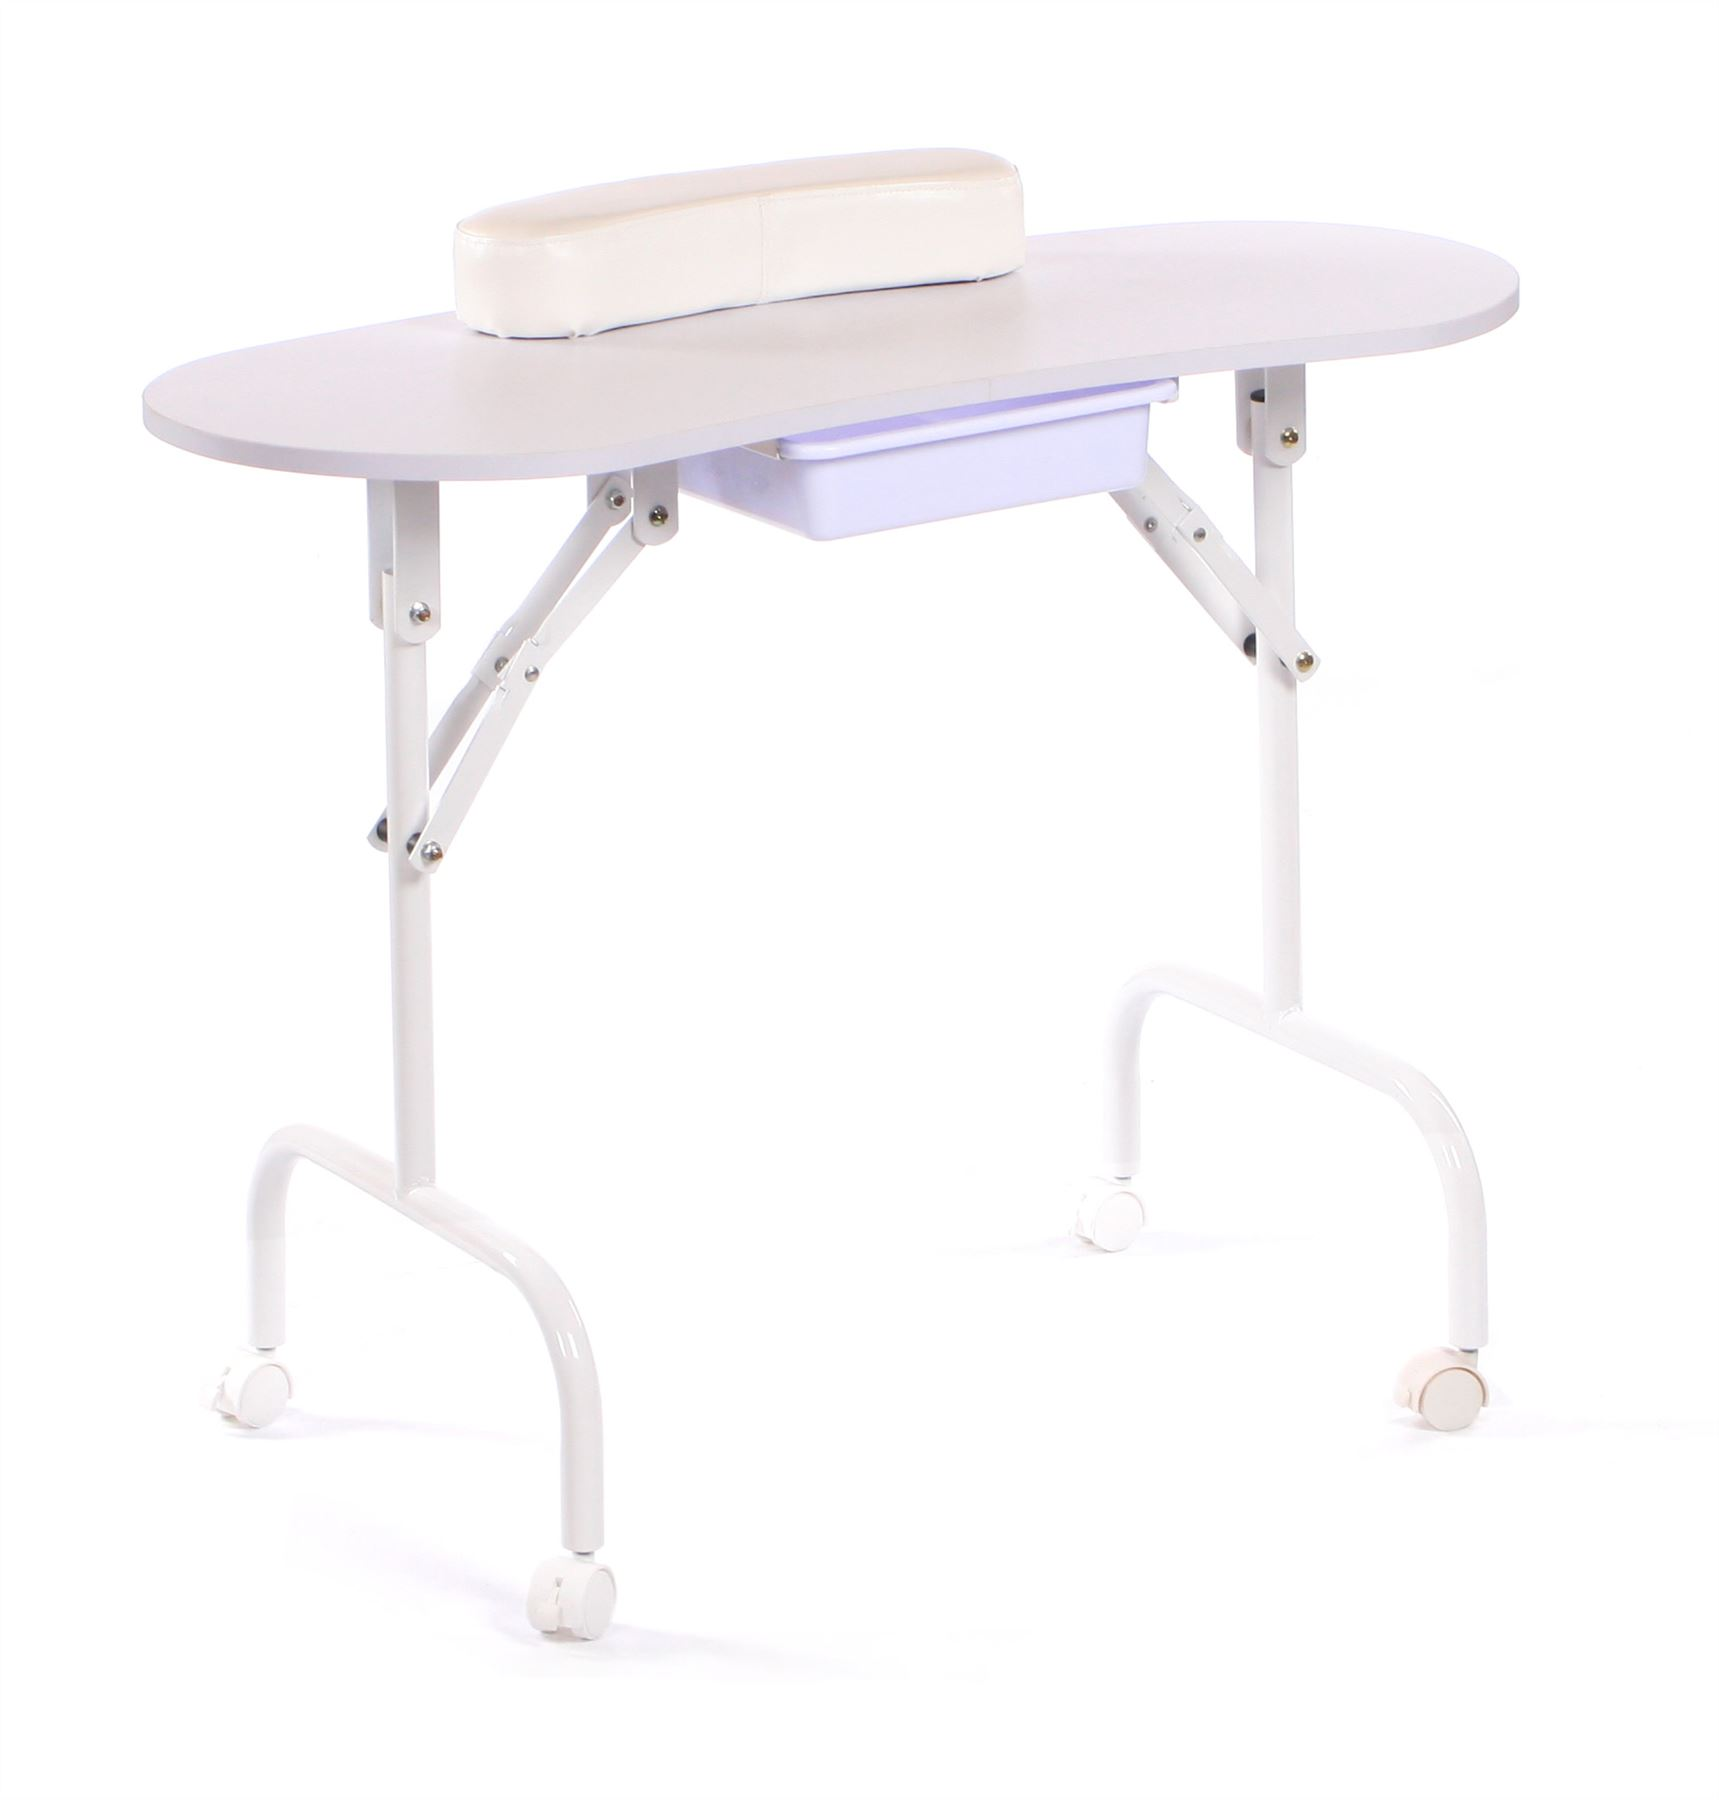 Portable Manicure Table by Urbanity Folding Mobile Compact Nail ...